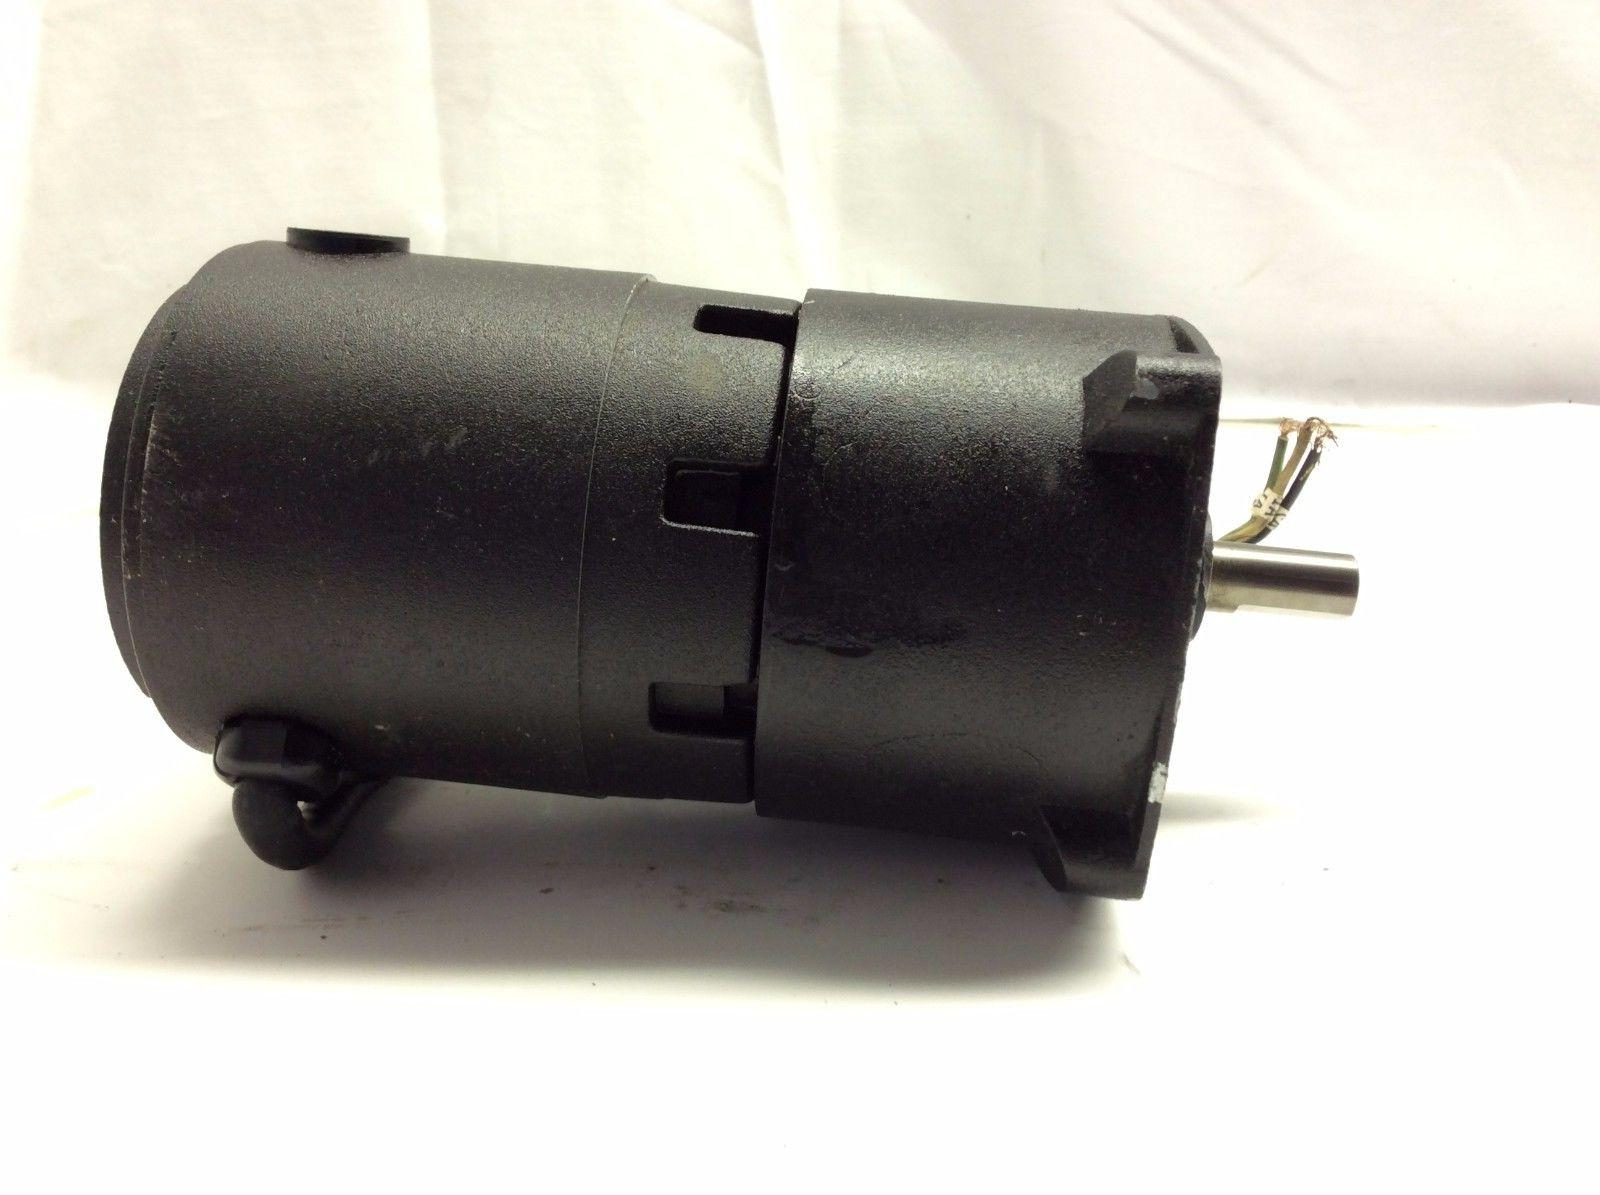 NEW! BALDOR Electric Gear Motor 90DC 0.3A 29-30RPM 40 60:1